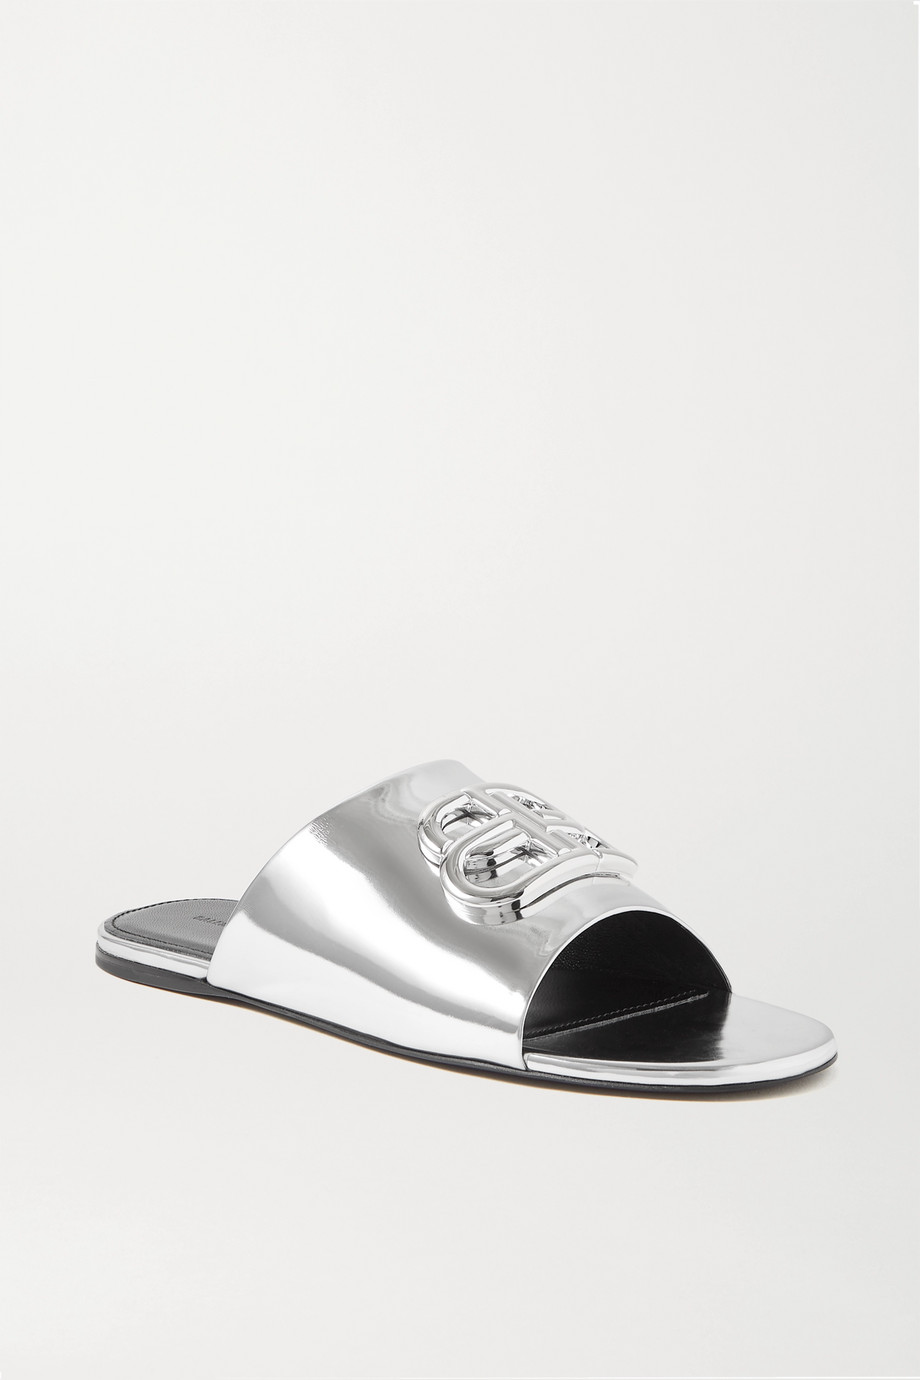 Balenciaga Oval BB logo-embellished mirrored-leather slides